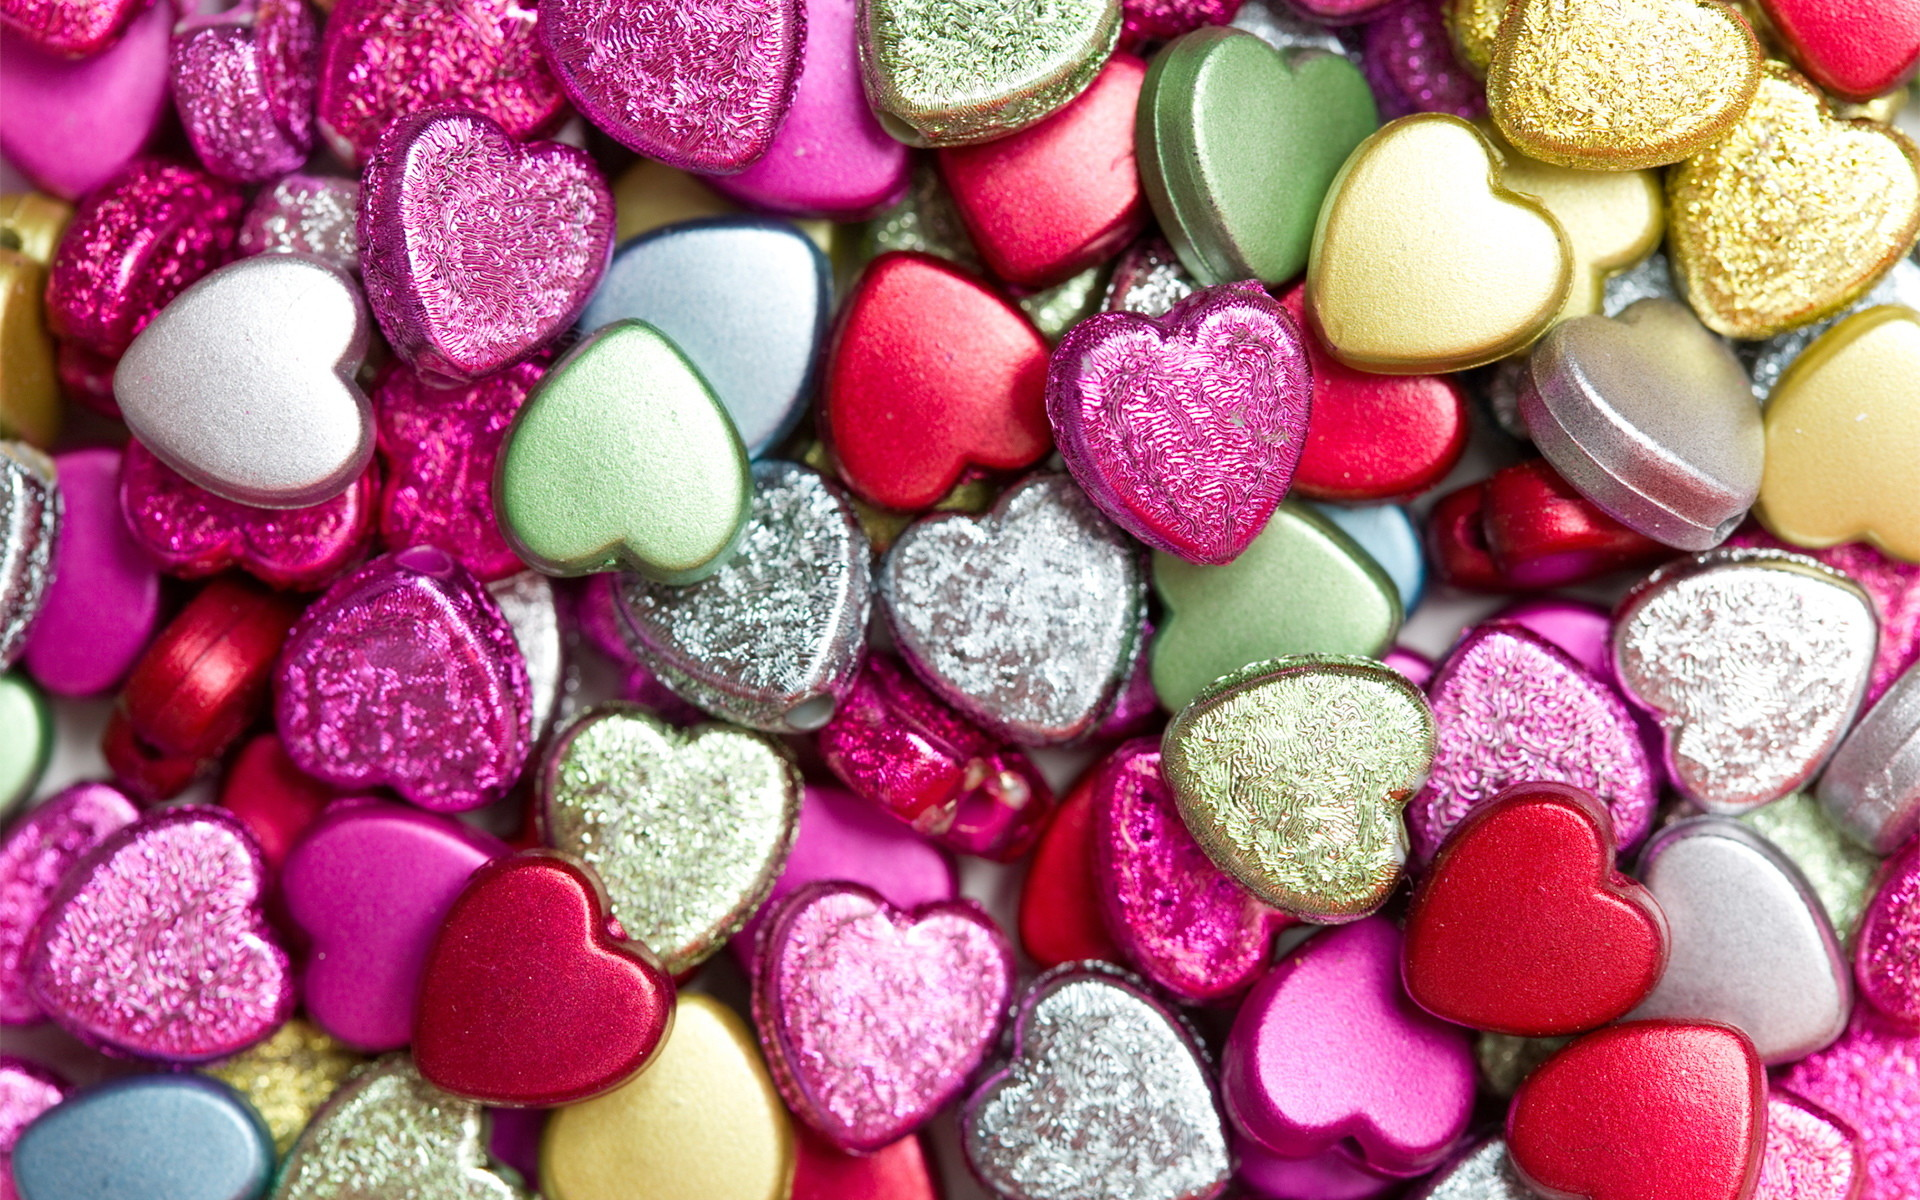 Candy Heart Wallpaper 68 images 1920x1200